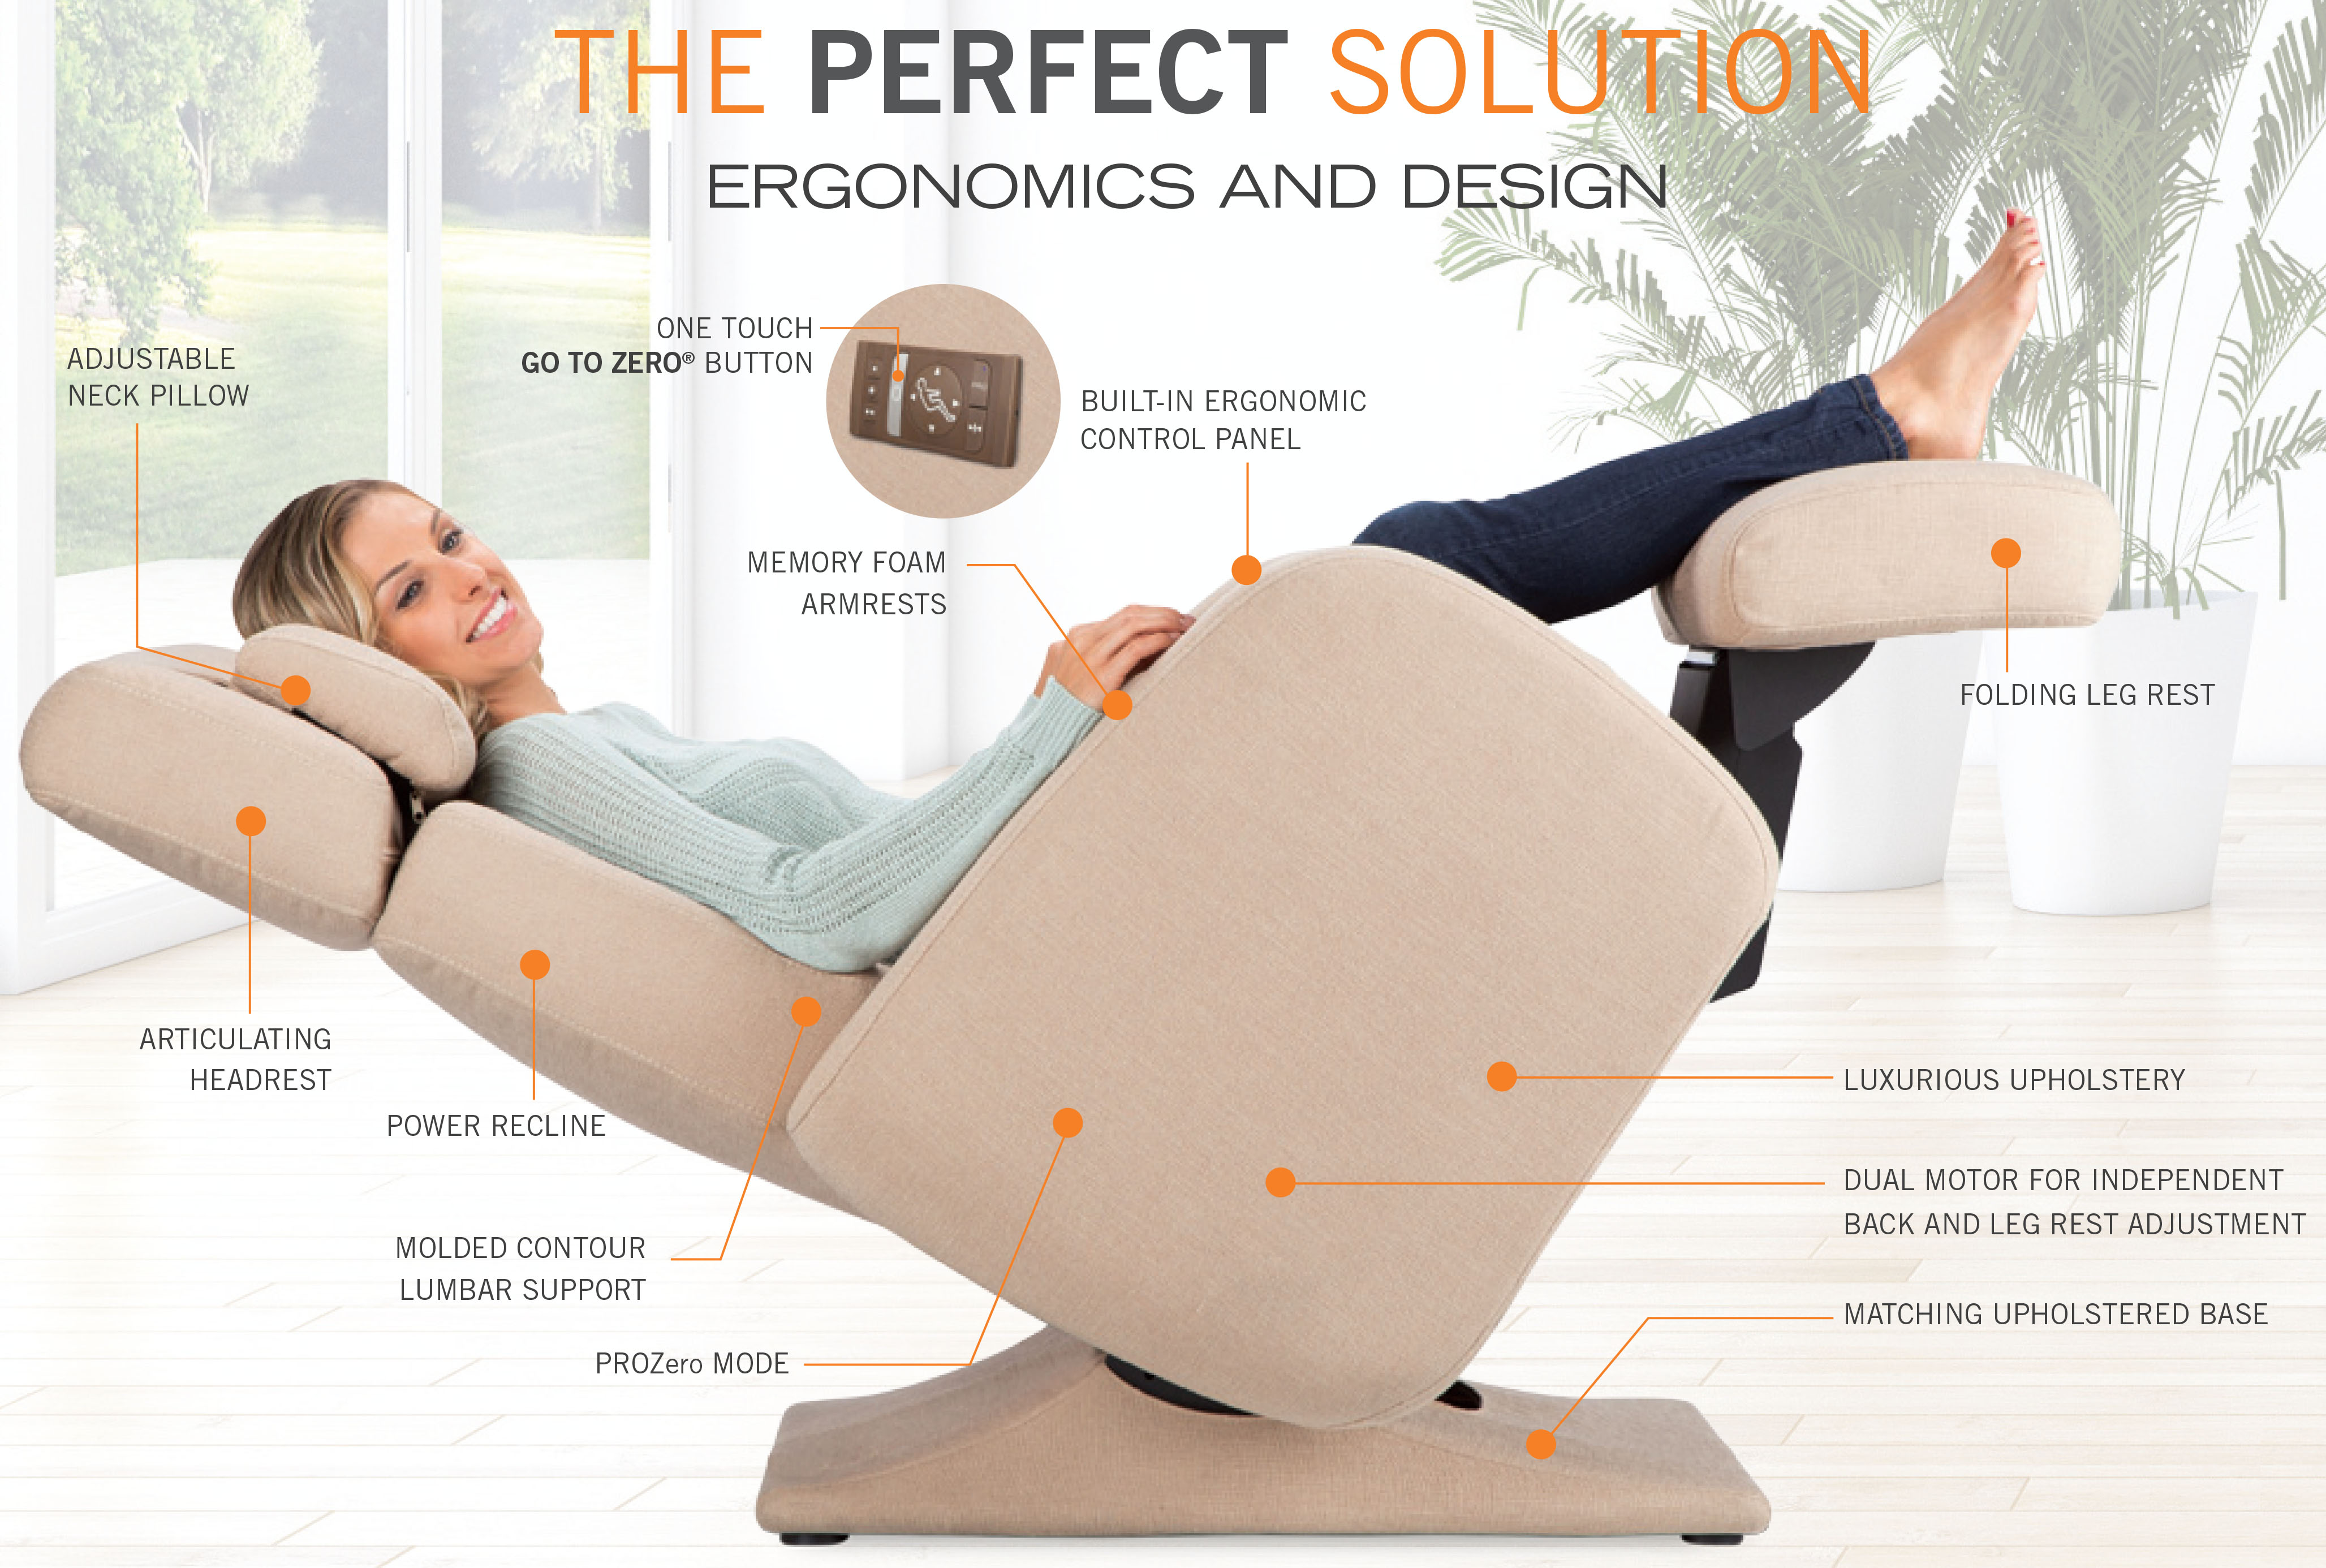 Sensational Pc 8500 Zero Gravity Electric Power Recline Perfect Chair Recliner By Human Touch Gamerscity Chair Design For Home Gamerscityorg